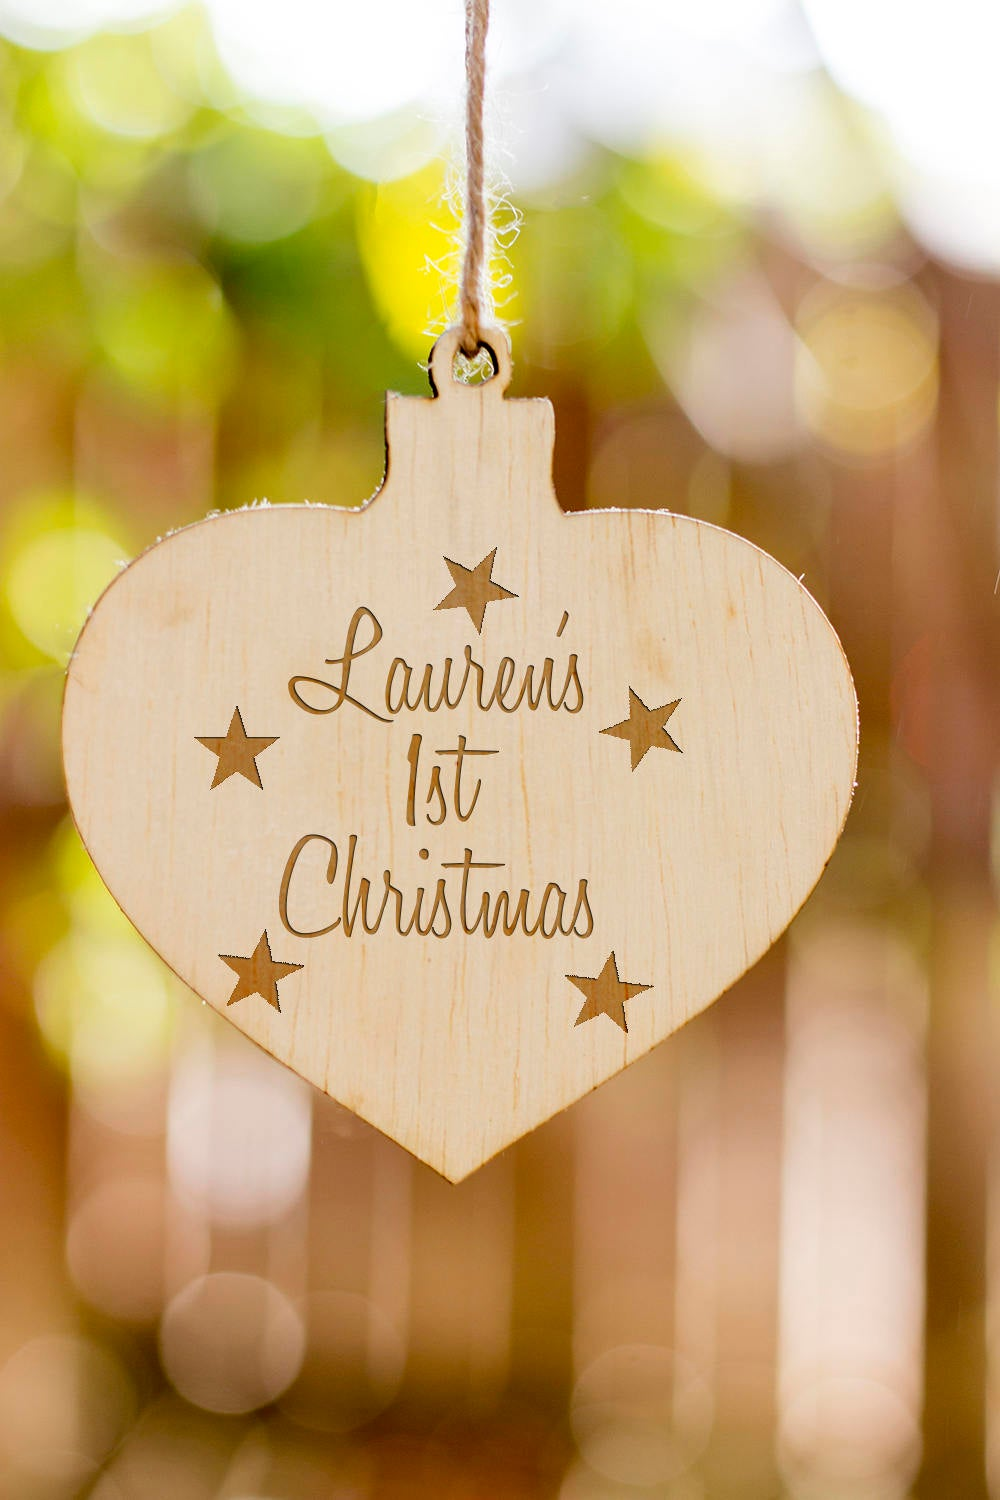 Personalized Christmas Ornament, Child's personalized Ornament, Wooden Christmas Ornament Gift, Engraved Wooden Christmas Ornament